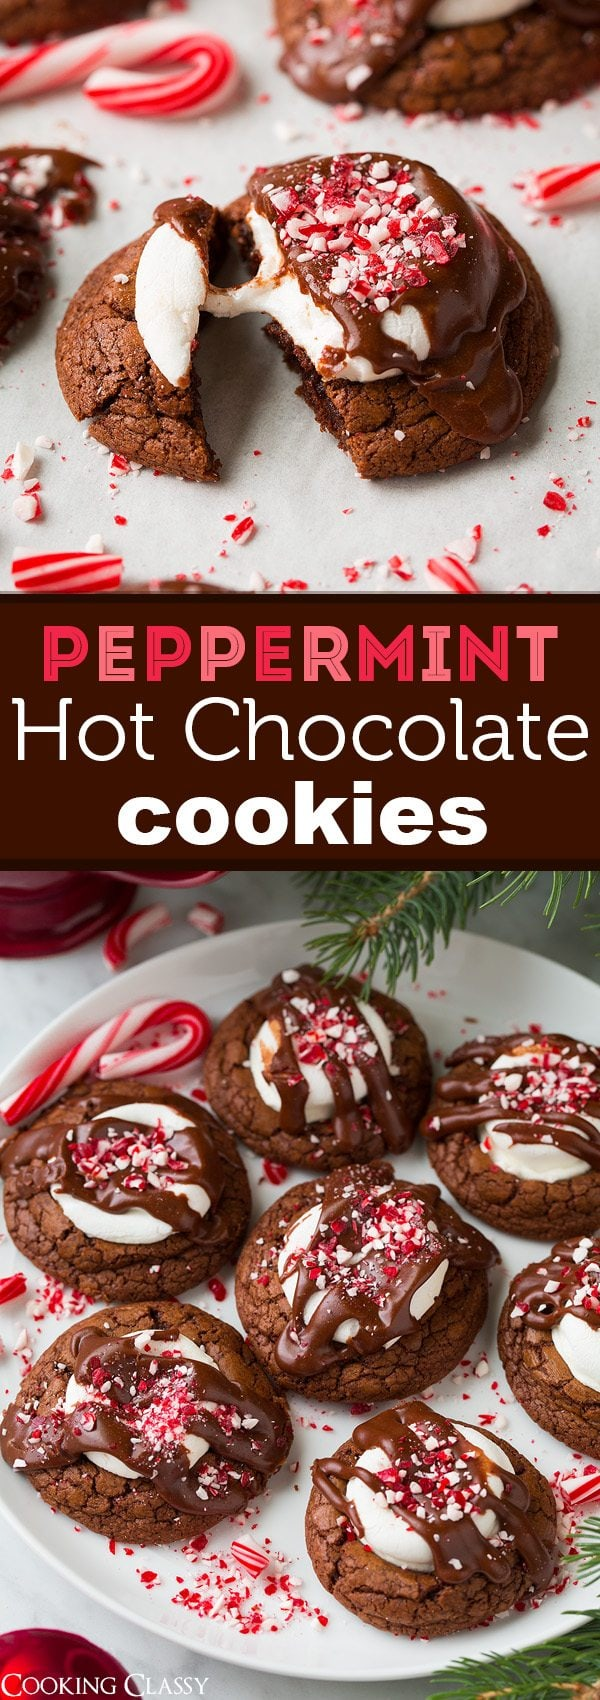 Peppermint Hot Chocolate Cookies | Cooking Classy